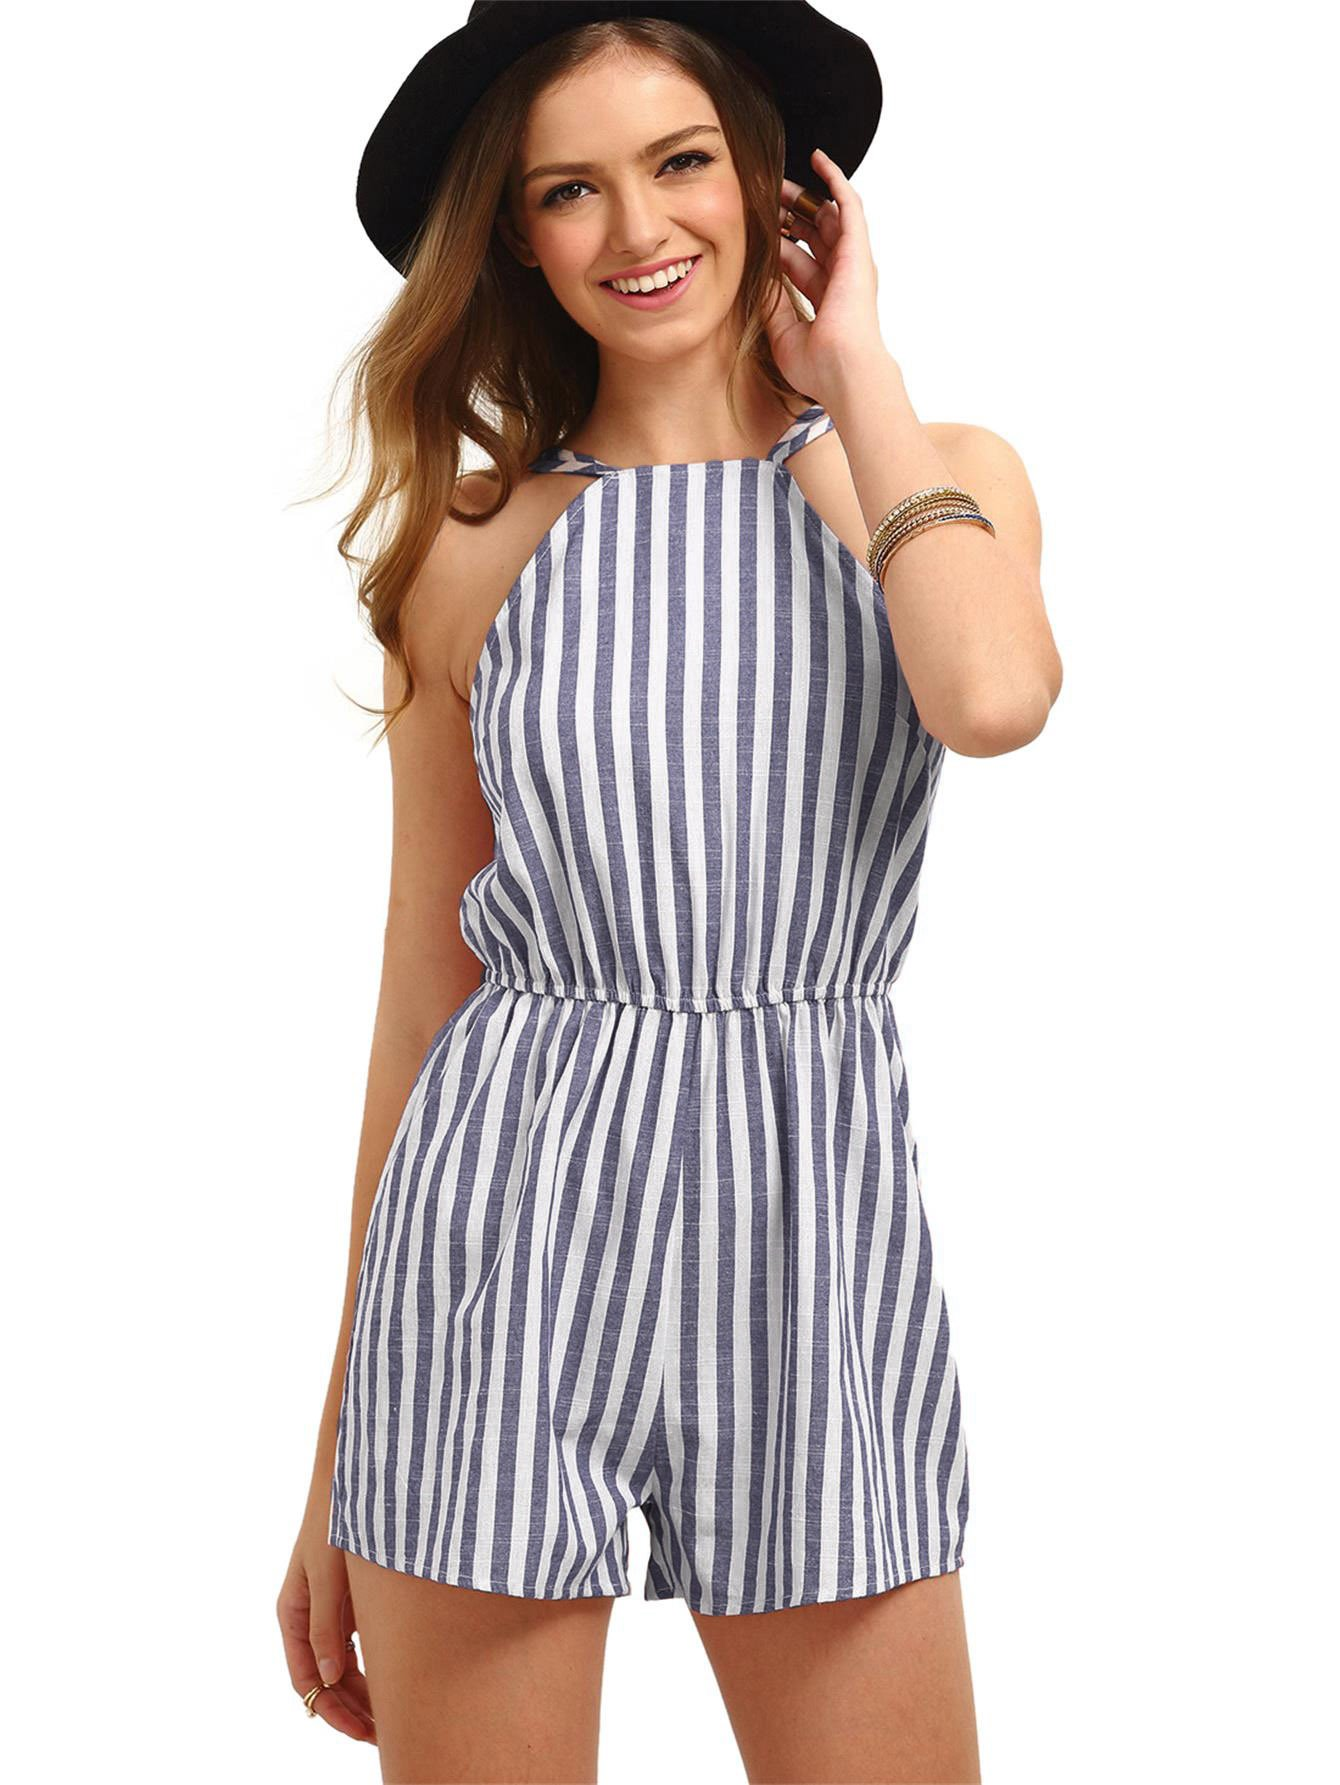 Romwe Women's Casual Striped Sleeveless Halter Sexy Short Romper Jumpsuit Navy M